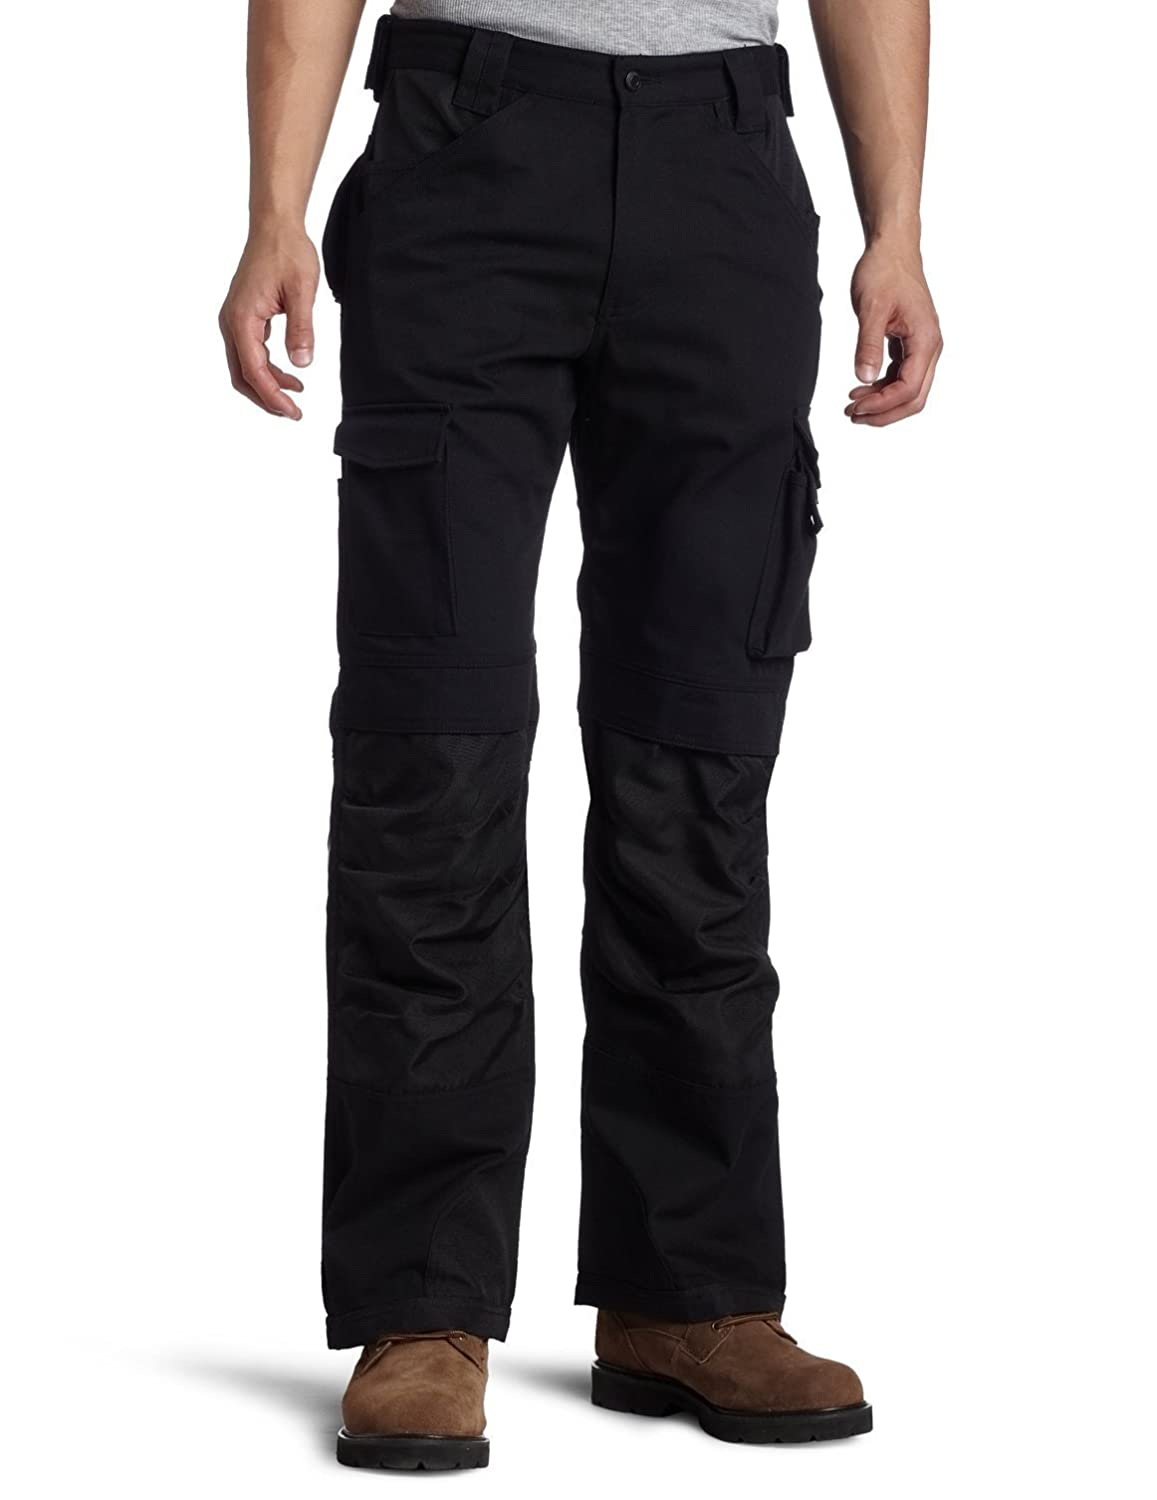 Cargo Pant With Caterpillar Men's HolsterauFashion mO8n0vNw